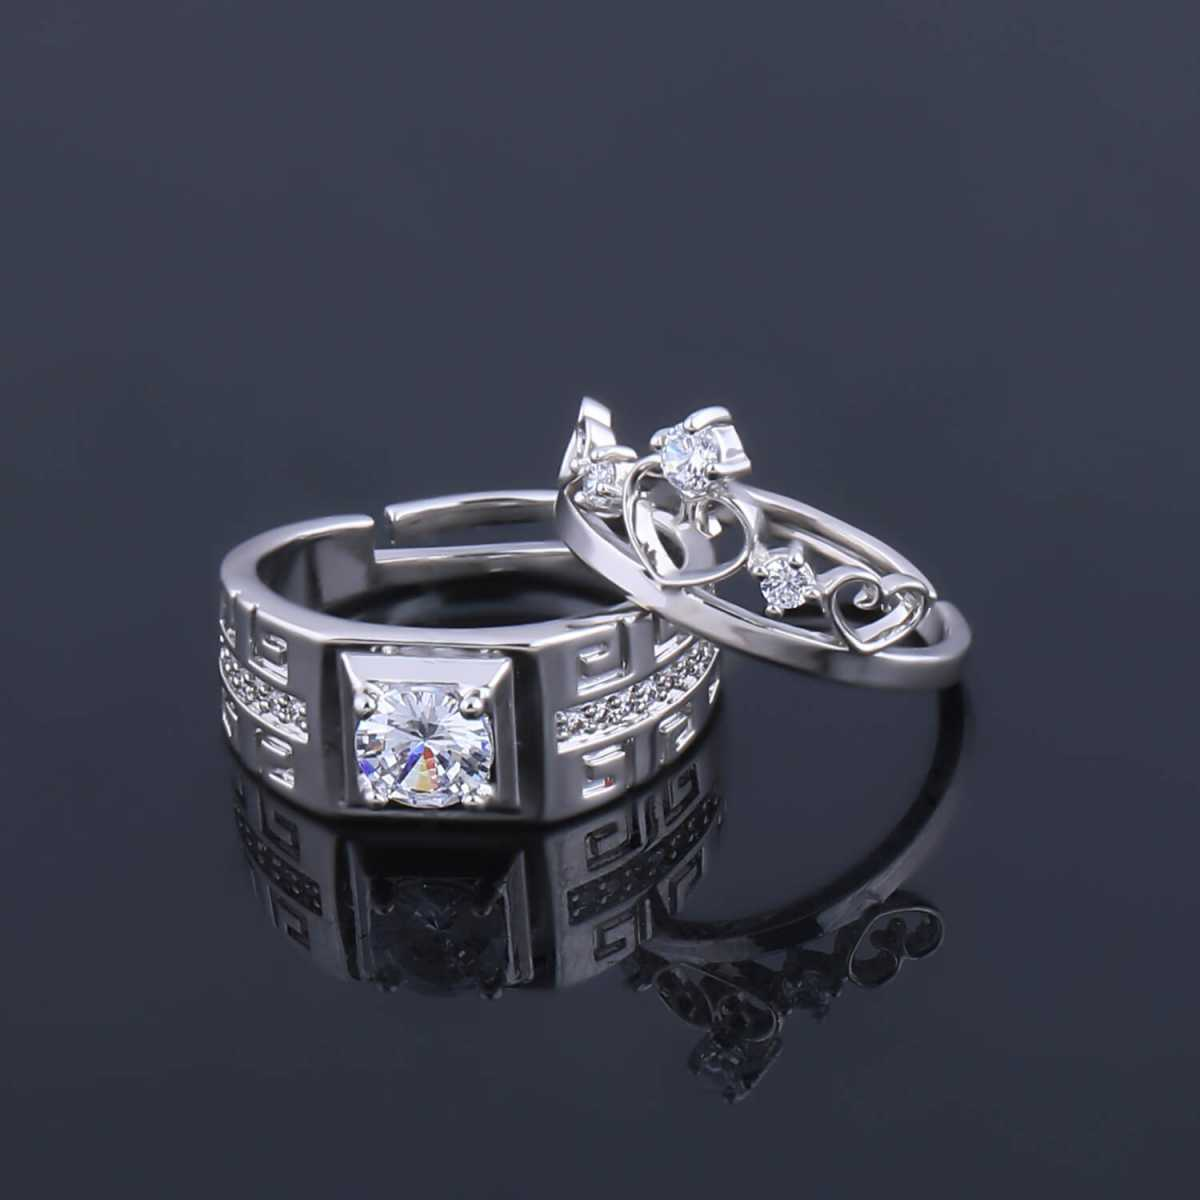 SILVERSHINE, silver plated adjustable royal and classy look king and queen crown design couple ring for men and women.